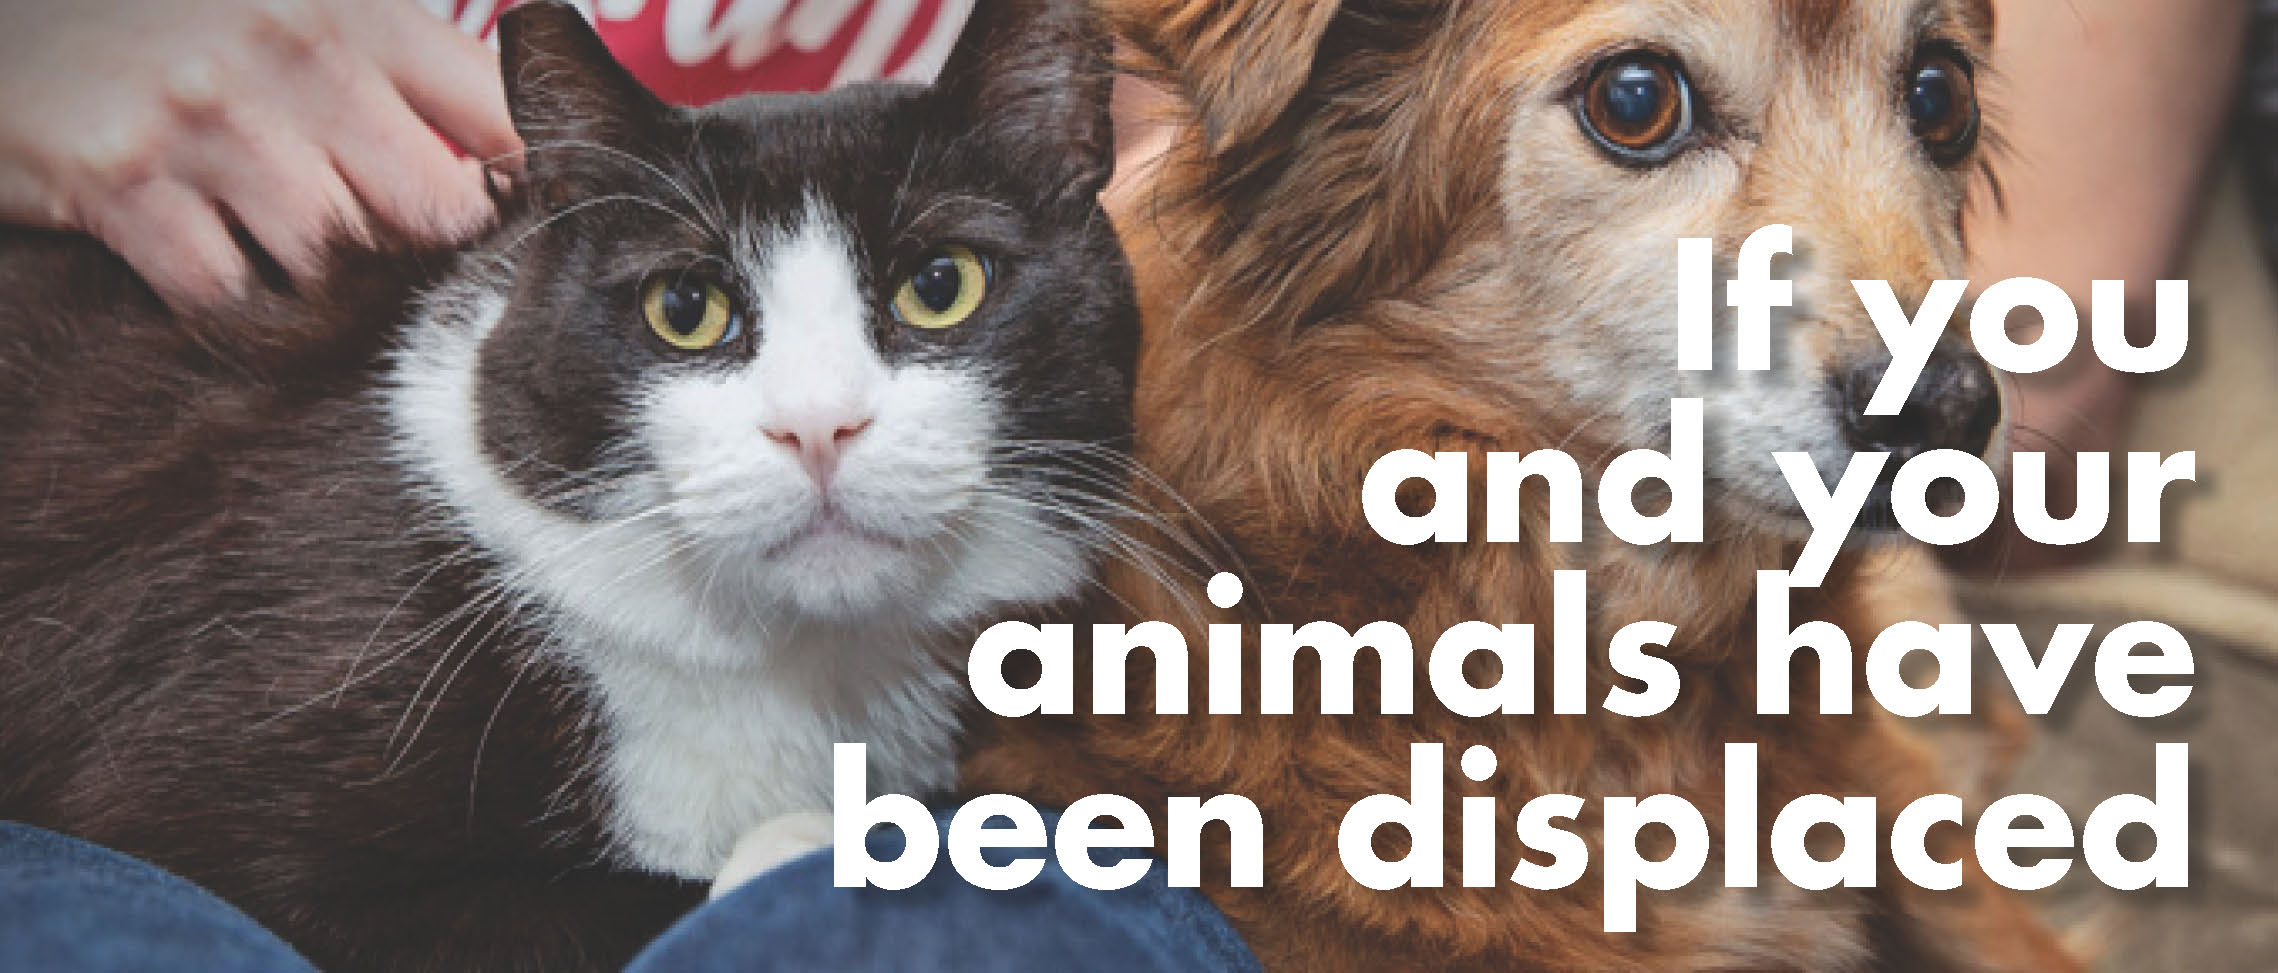 If You and Your Animals have been Displaced